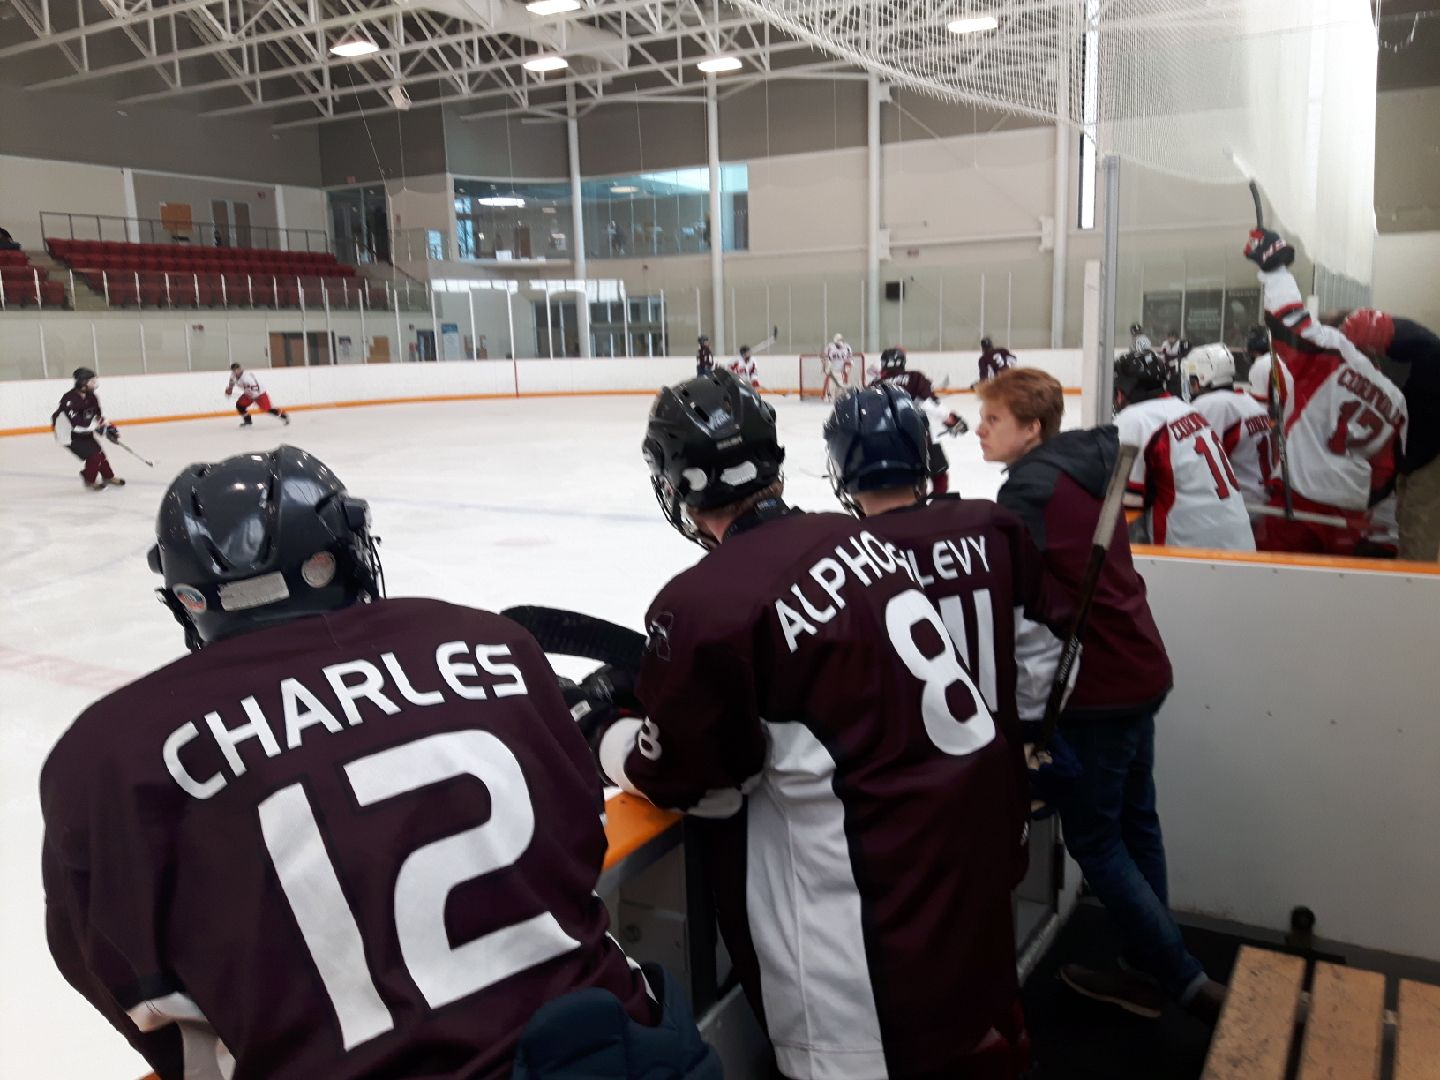 Skate, Mac, skate! The McMaster men's hockey club wraps up another long season of travel and tournaments led by coach Rob Wilkinson